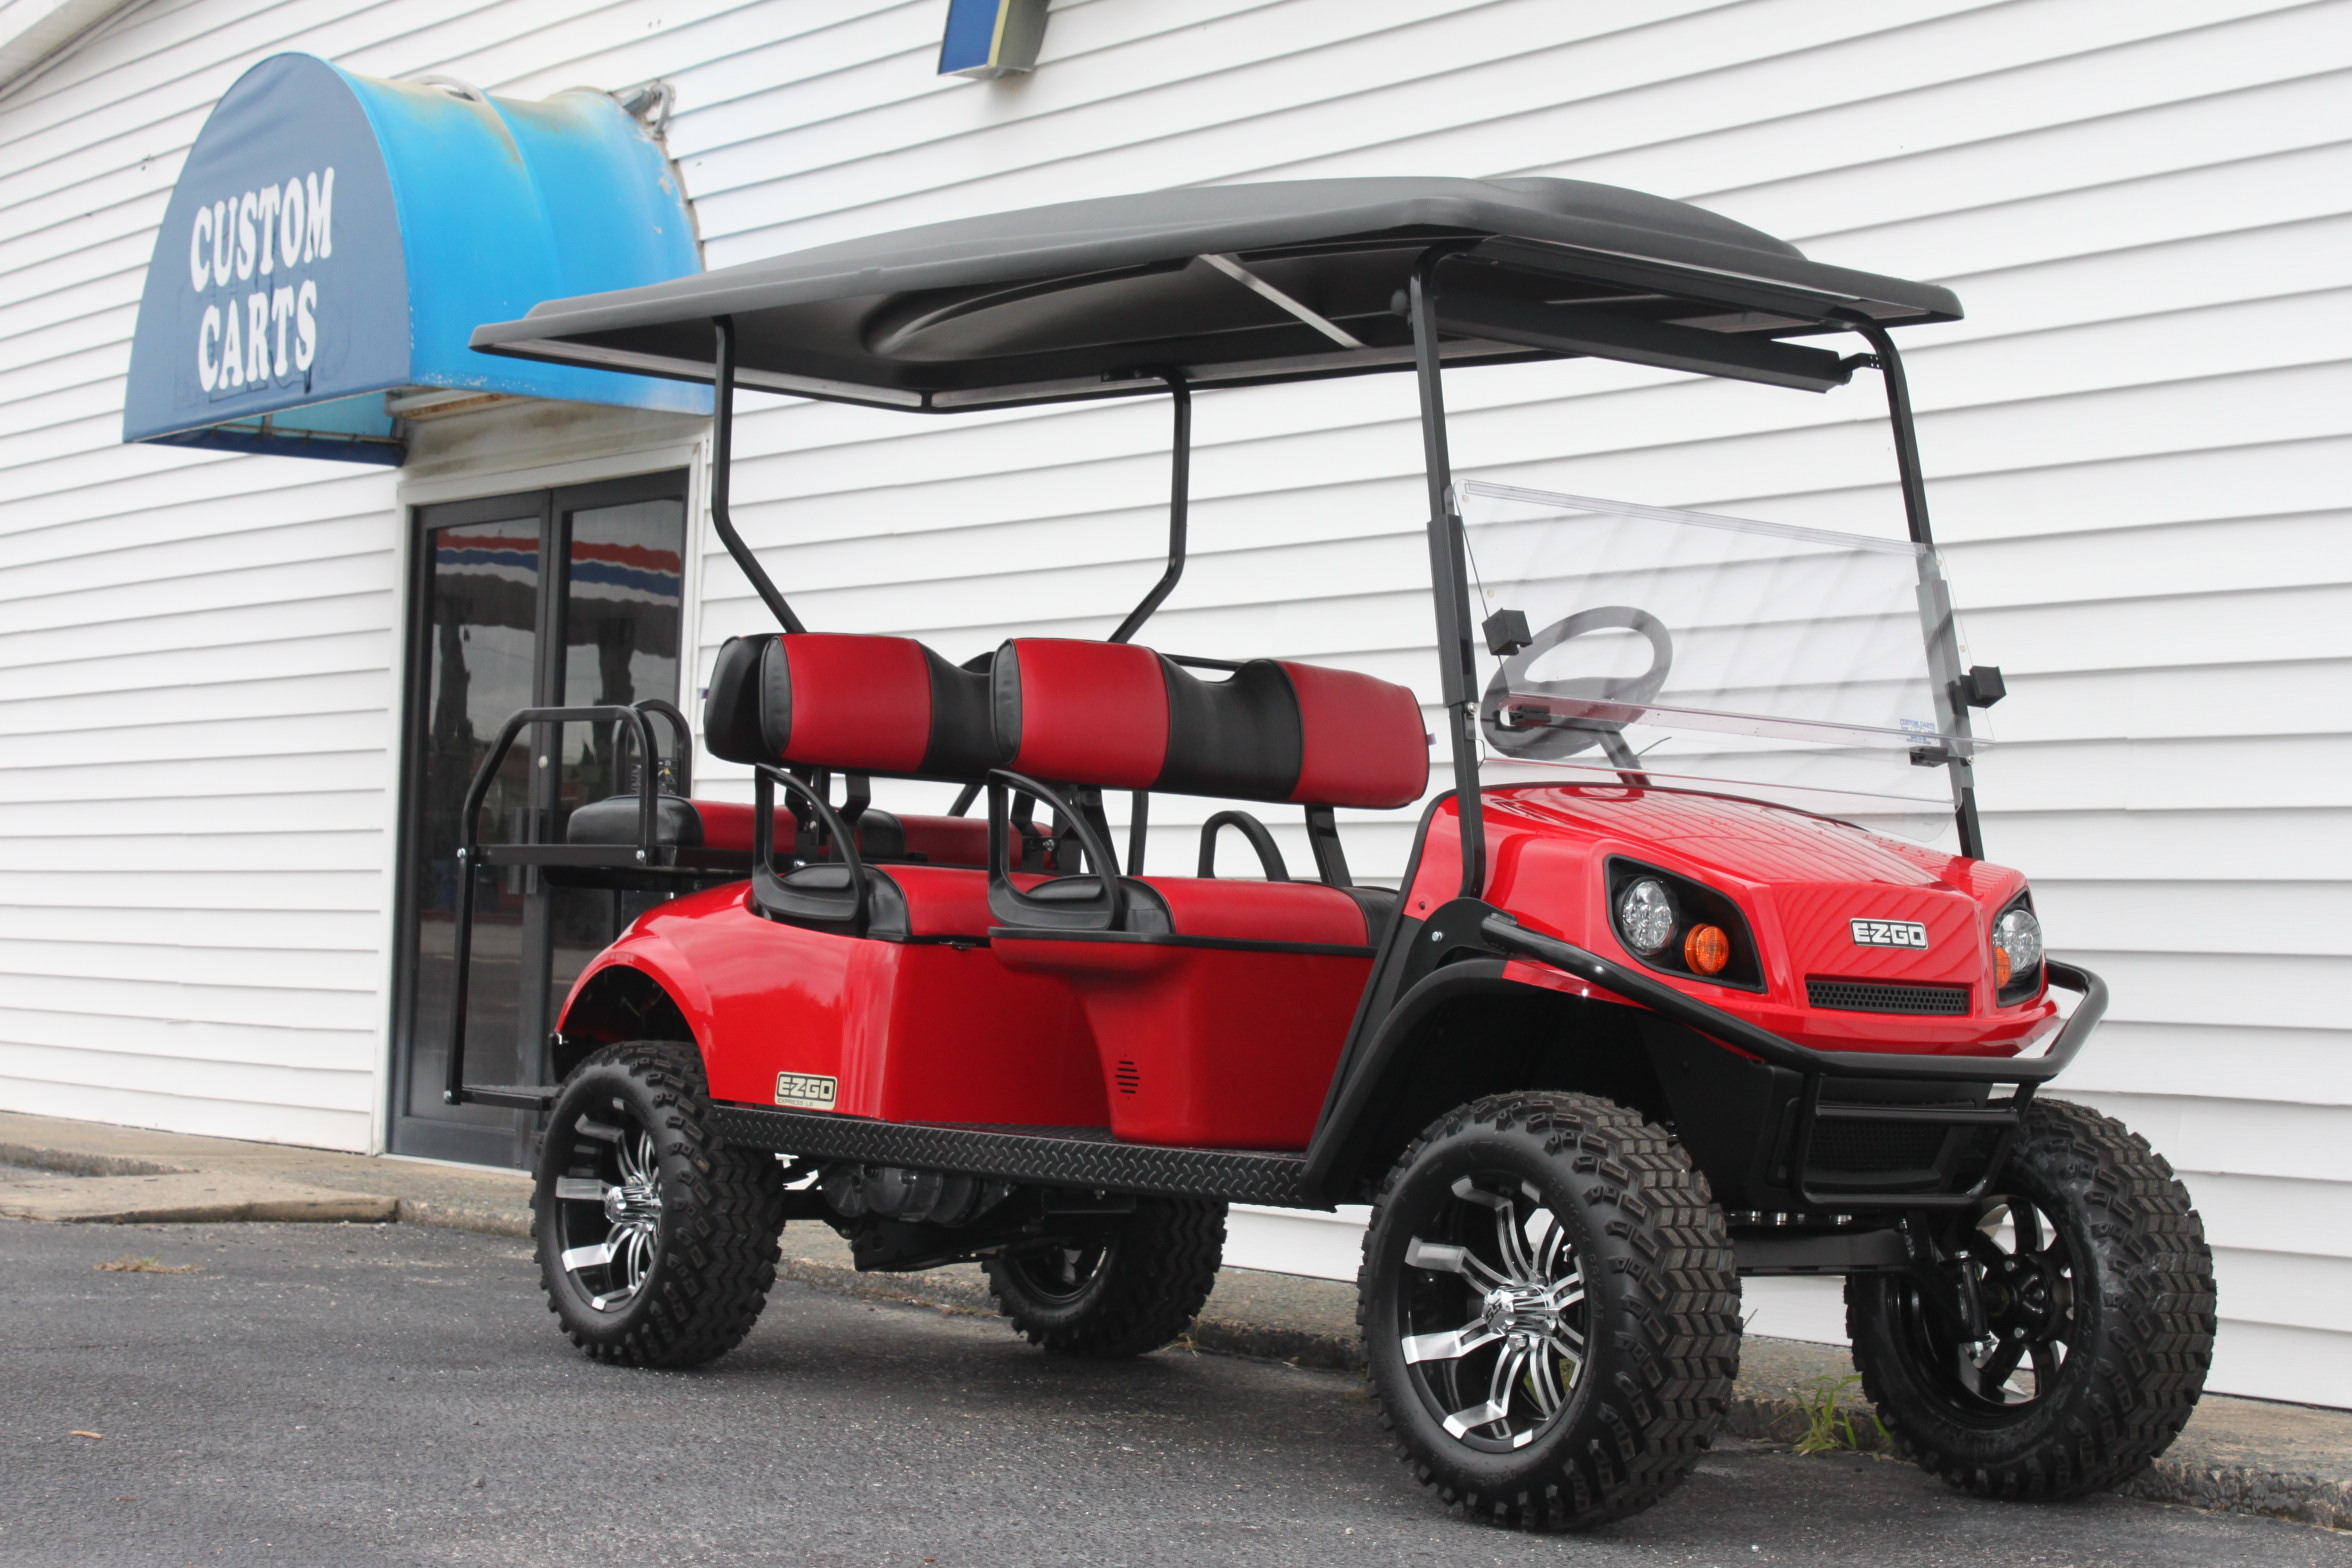 STOCK# 2019REDL6, 2019 E-Z-GO L6 EXPRESS GAS GOLF CART